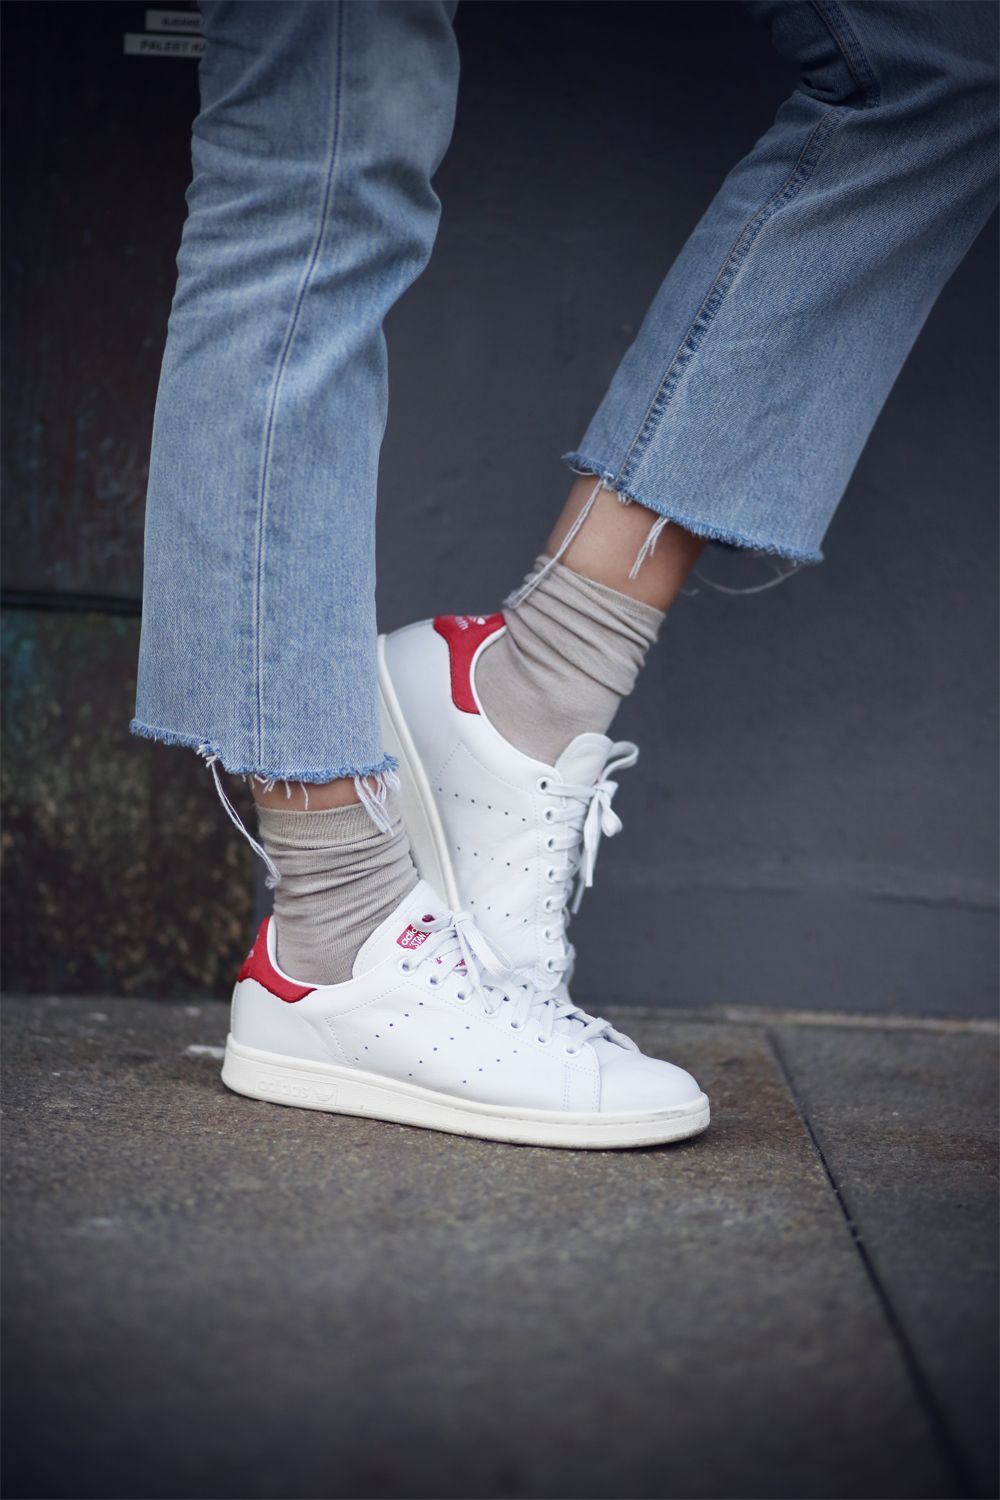 Revealing your ankle is always a great way to work low sneakers out http://dresslikeaparisian.com/how-to-wear-flats/